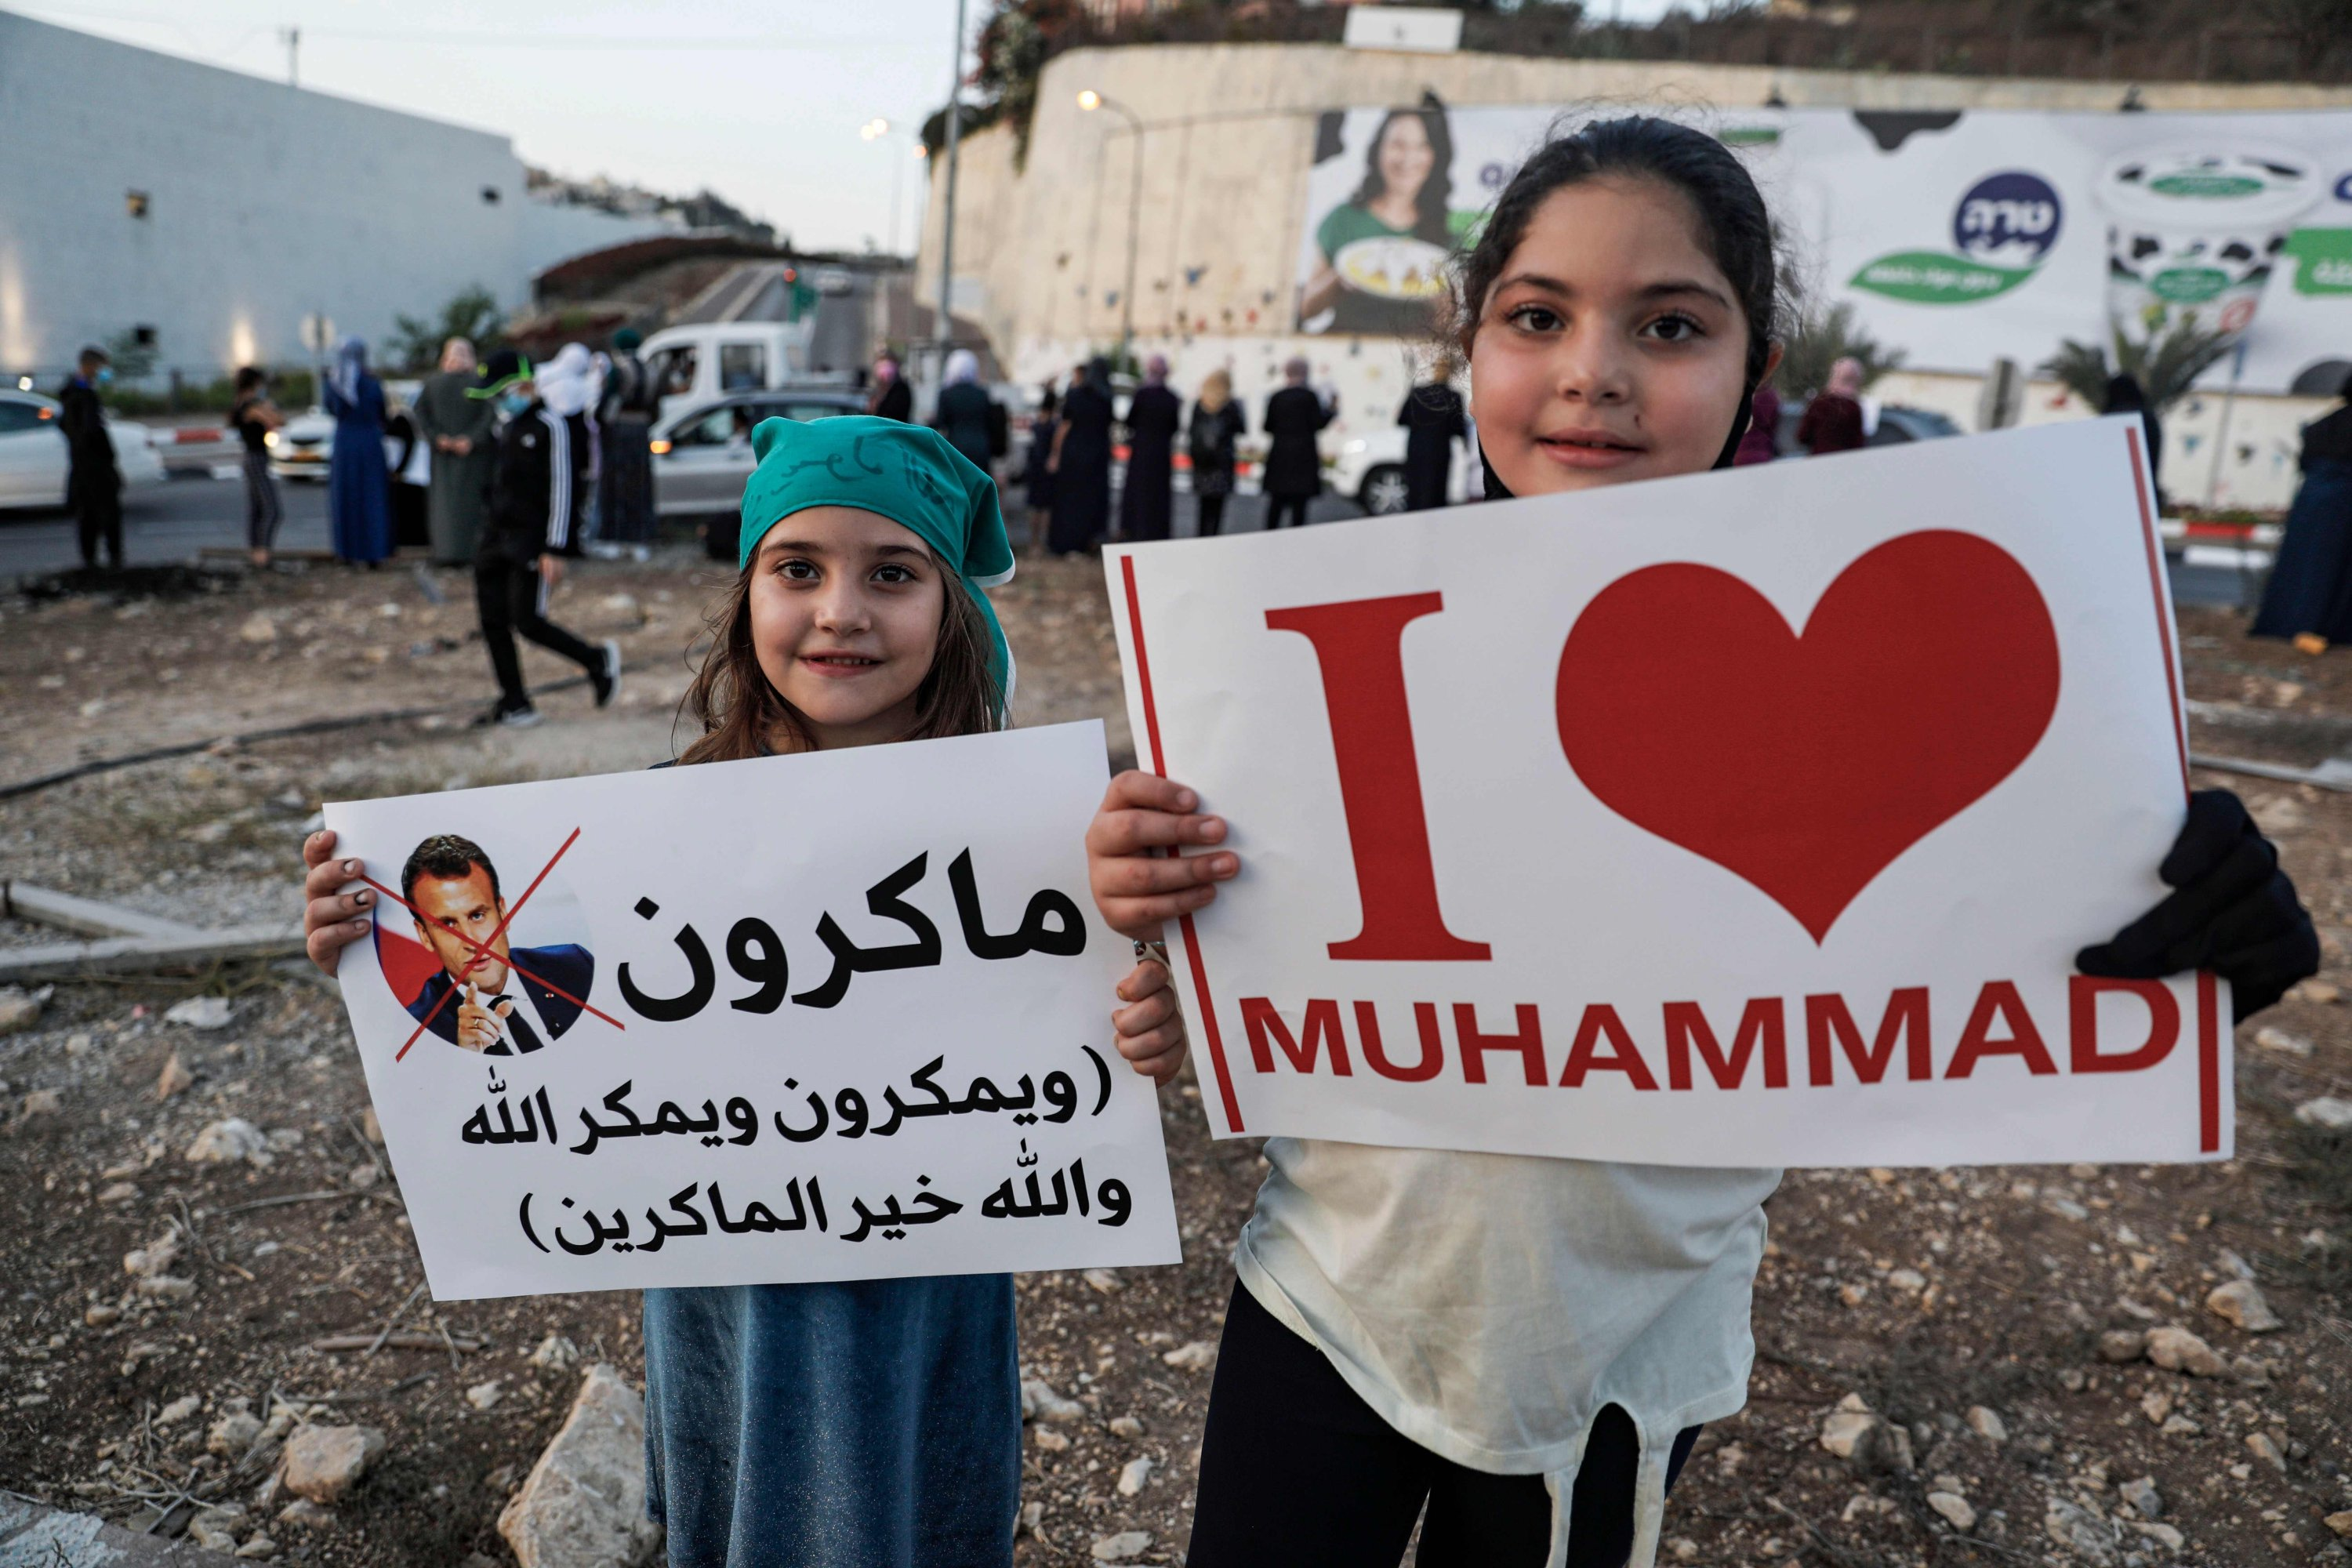 Young Arab Israeli Muslim girls hold up signs during a rally protesting against the comments of French President Emmanuel Macron over Prophet Mohammed cartoons, in the Arab town of Umm-Al Fahem in Northern Israel on Oct. 25, 2020. (AFP)